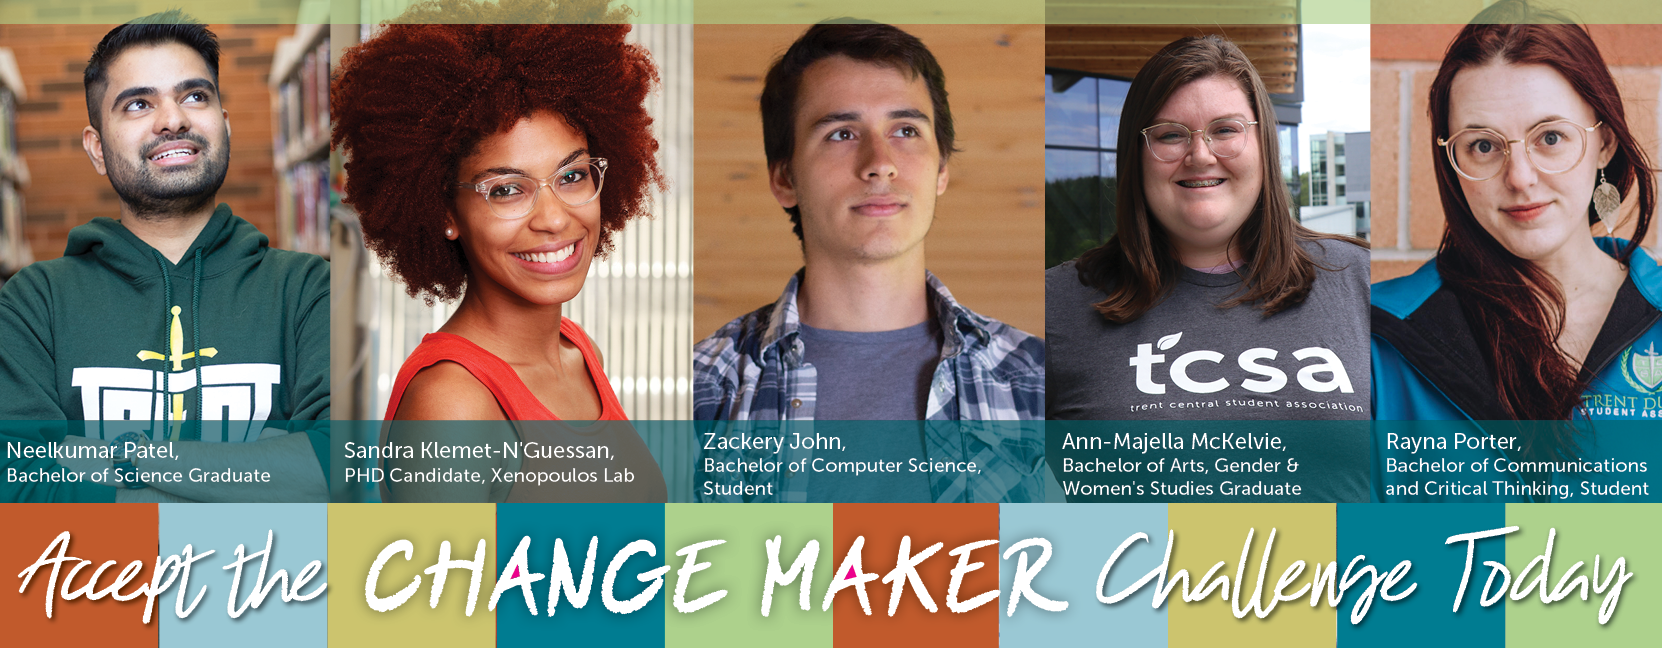 Accept the Change Maker Challenge Today. Headshot of 5 Trent Students. From left to Right Neelkumar Patel Bachelor of Science Graduate, Sandra Klement-N'Guessan PHD Candidate, Xenopoulos Lab, Zachary John, Bachelor of Computer Science Student, Ann-Majella McKelvie, Bachelor of Arts, Gender & Women's Studies Graduate, Rayna Porter, Bachelor of Communications and Critical Thinking Student